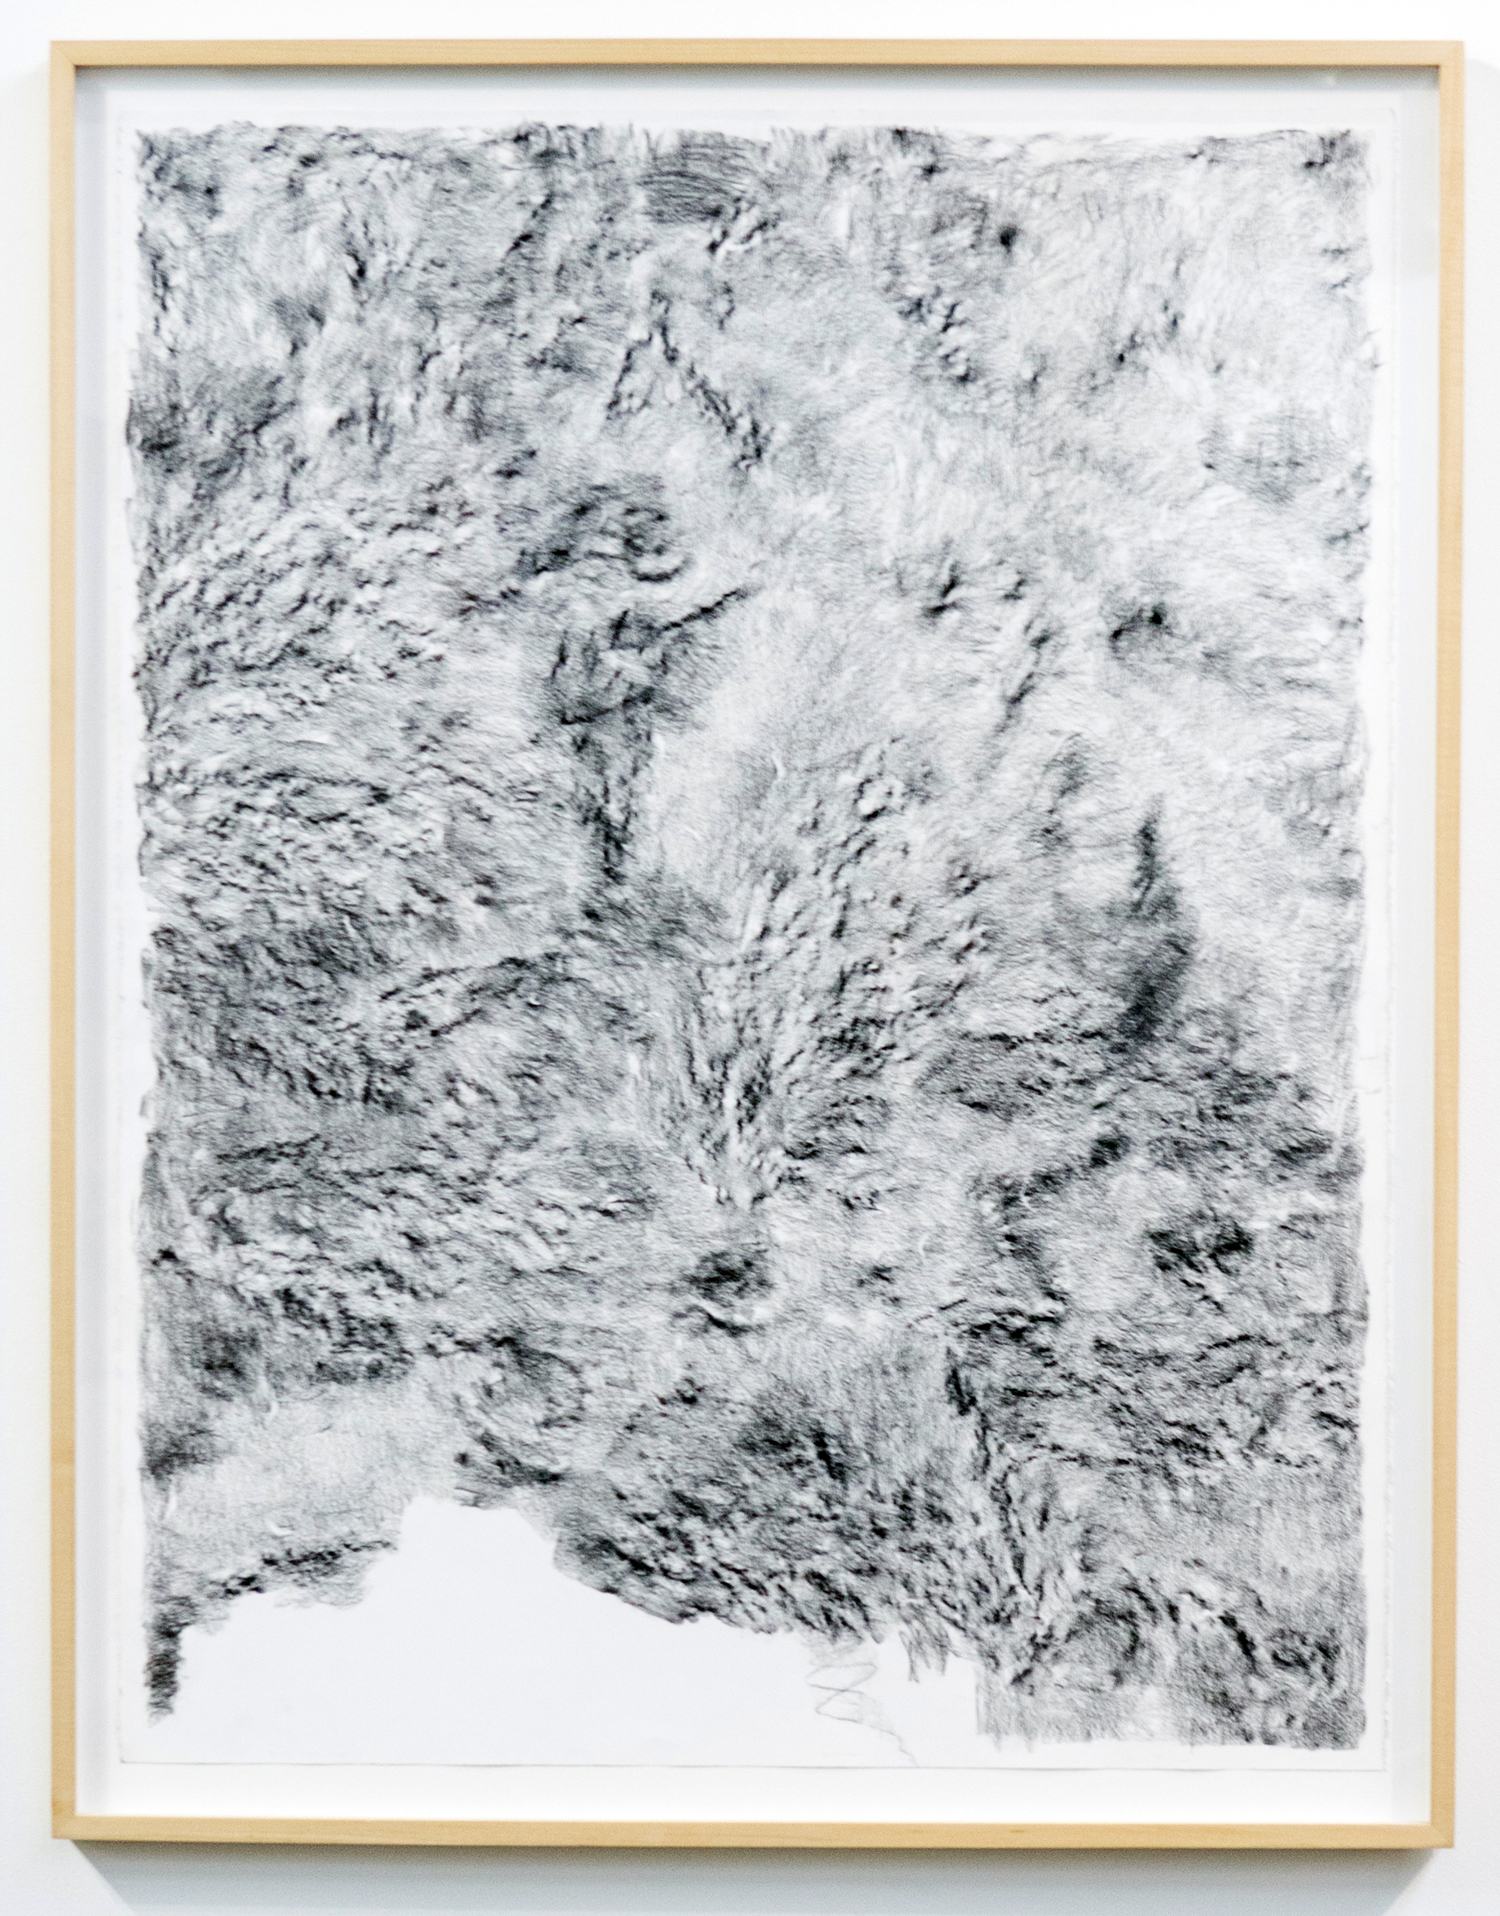 MLSL_02_ElysianPark  , 2015  Conté on rag paper  Paper 49.75 x 38.5 in (126.37 x 97.79 cm) Framed 52.25 x 42.5 in (132.72 x 107.95 cm)